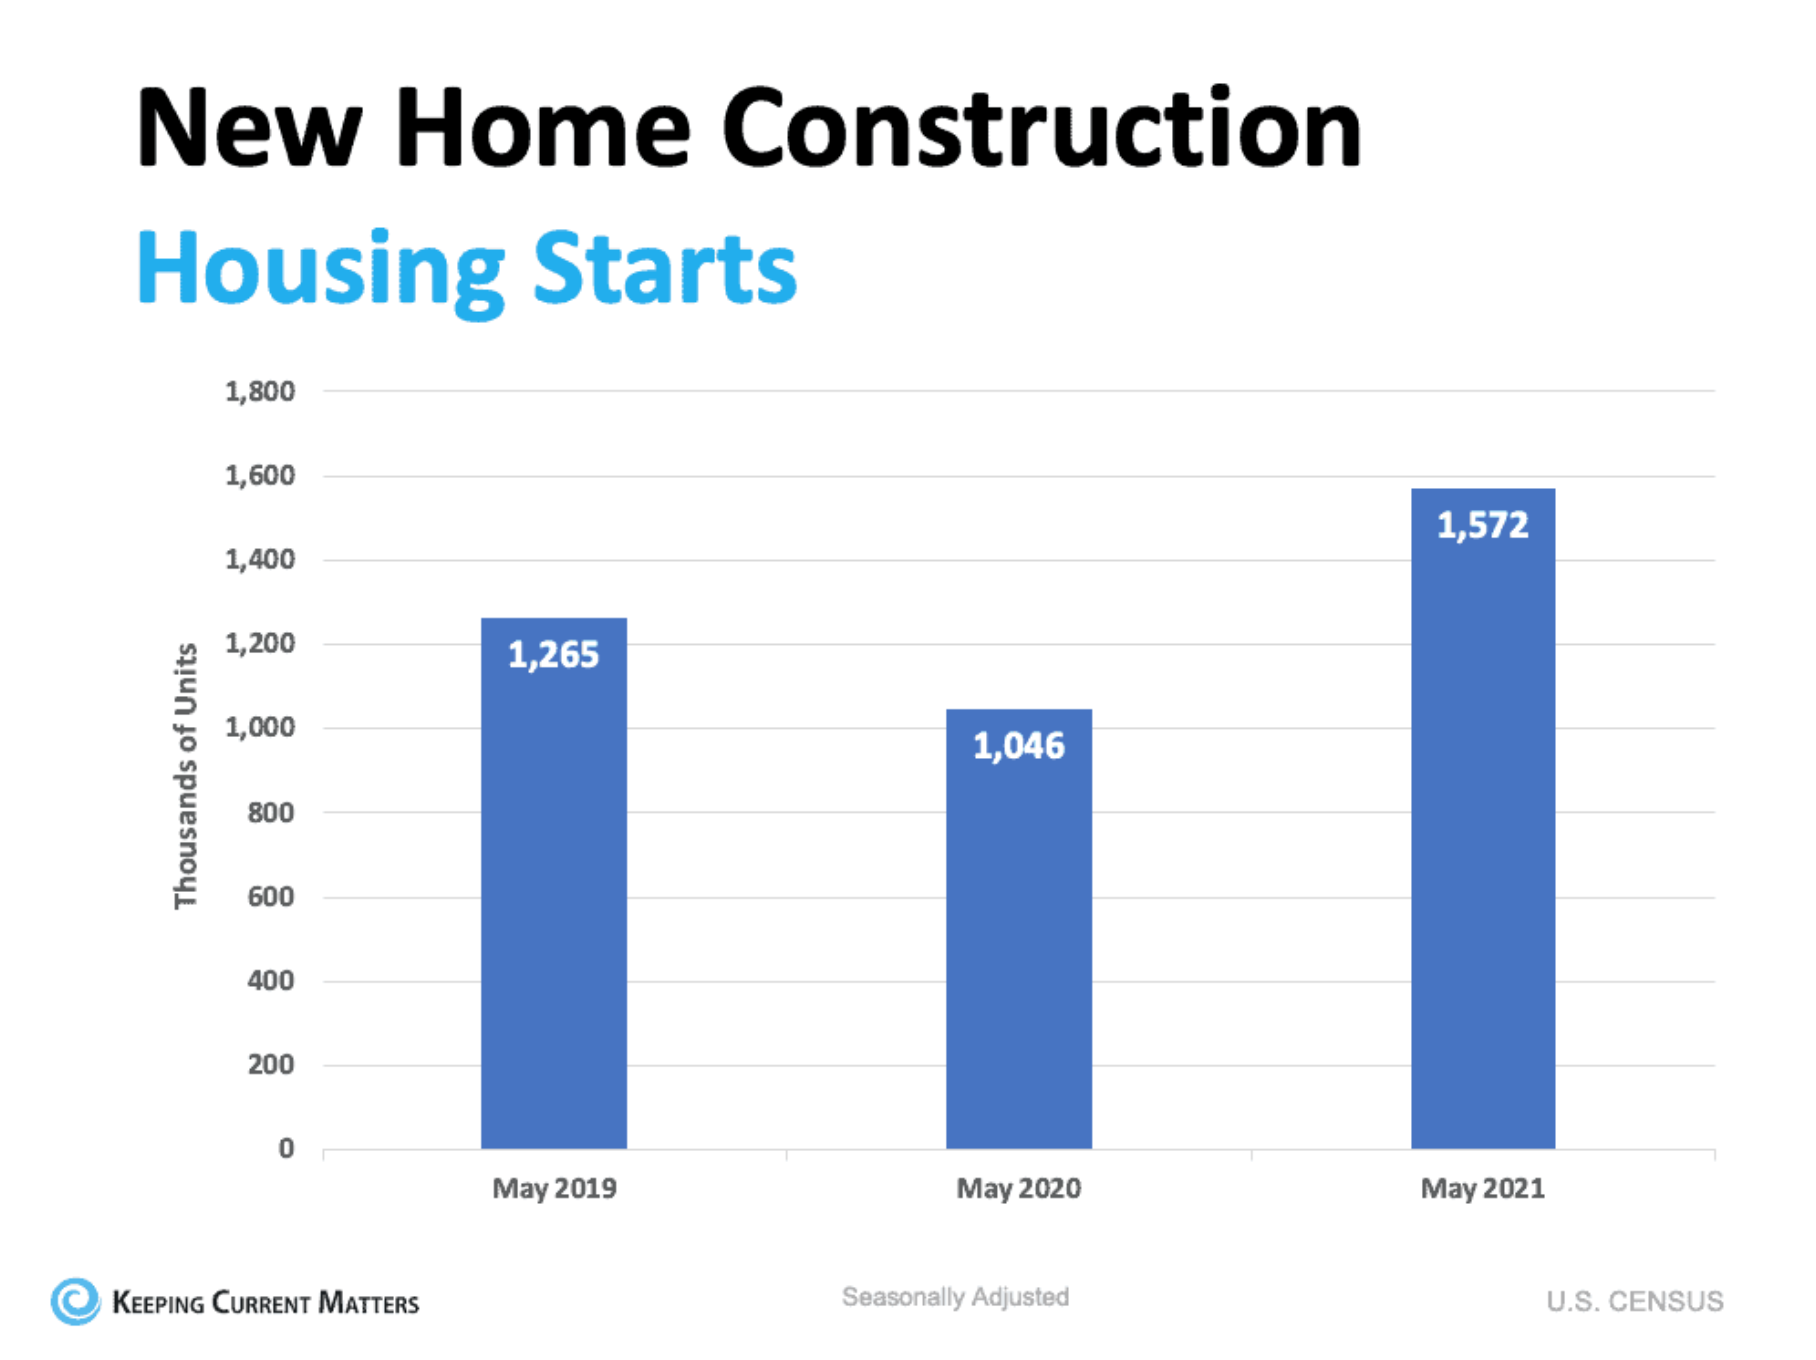 New Home Construction Housing Starts 2021